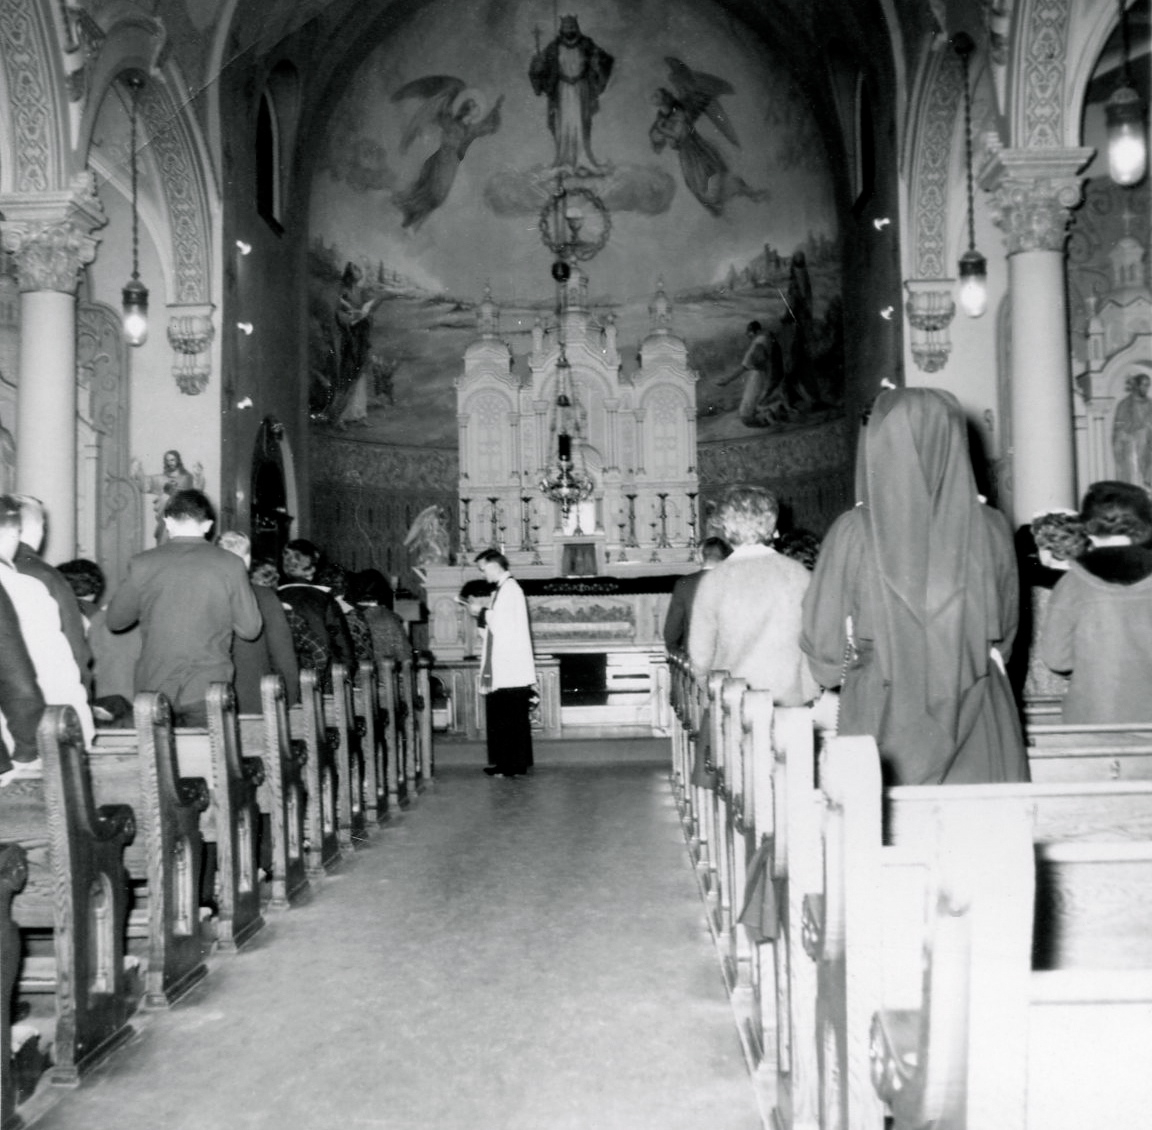 Interior of St. Patrick's 1950